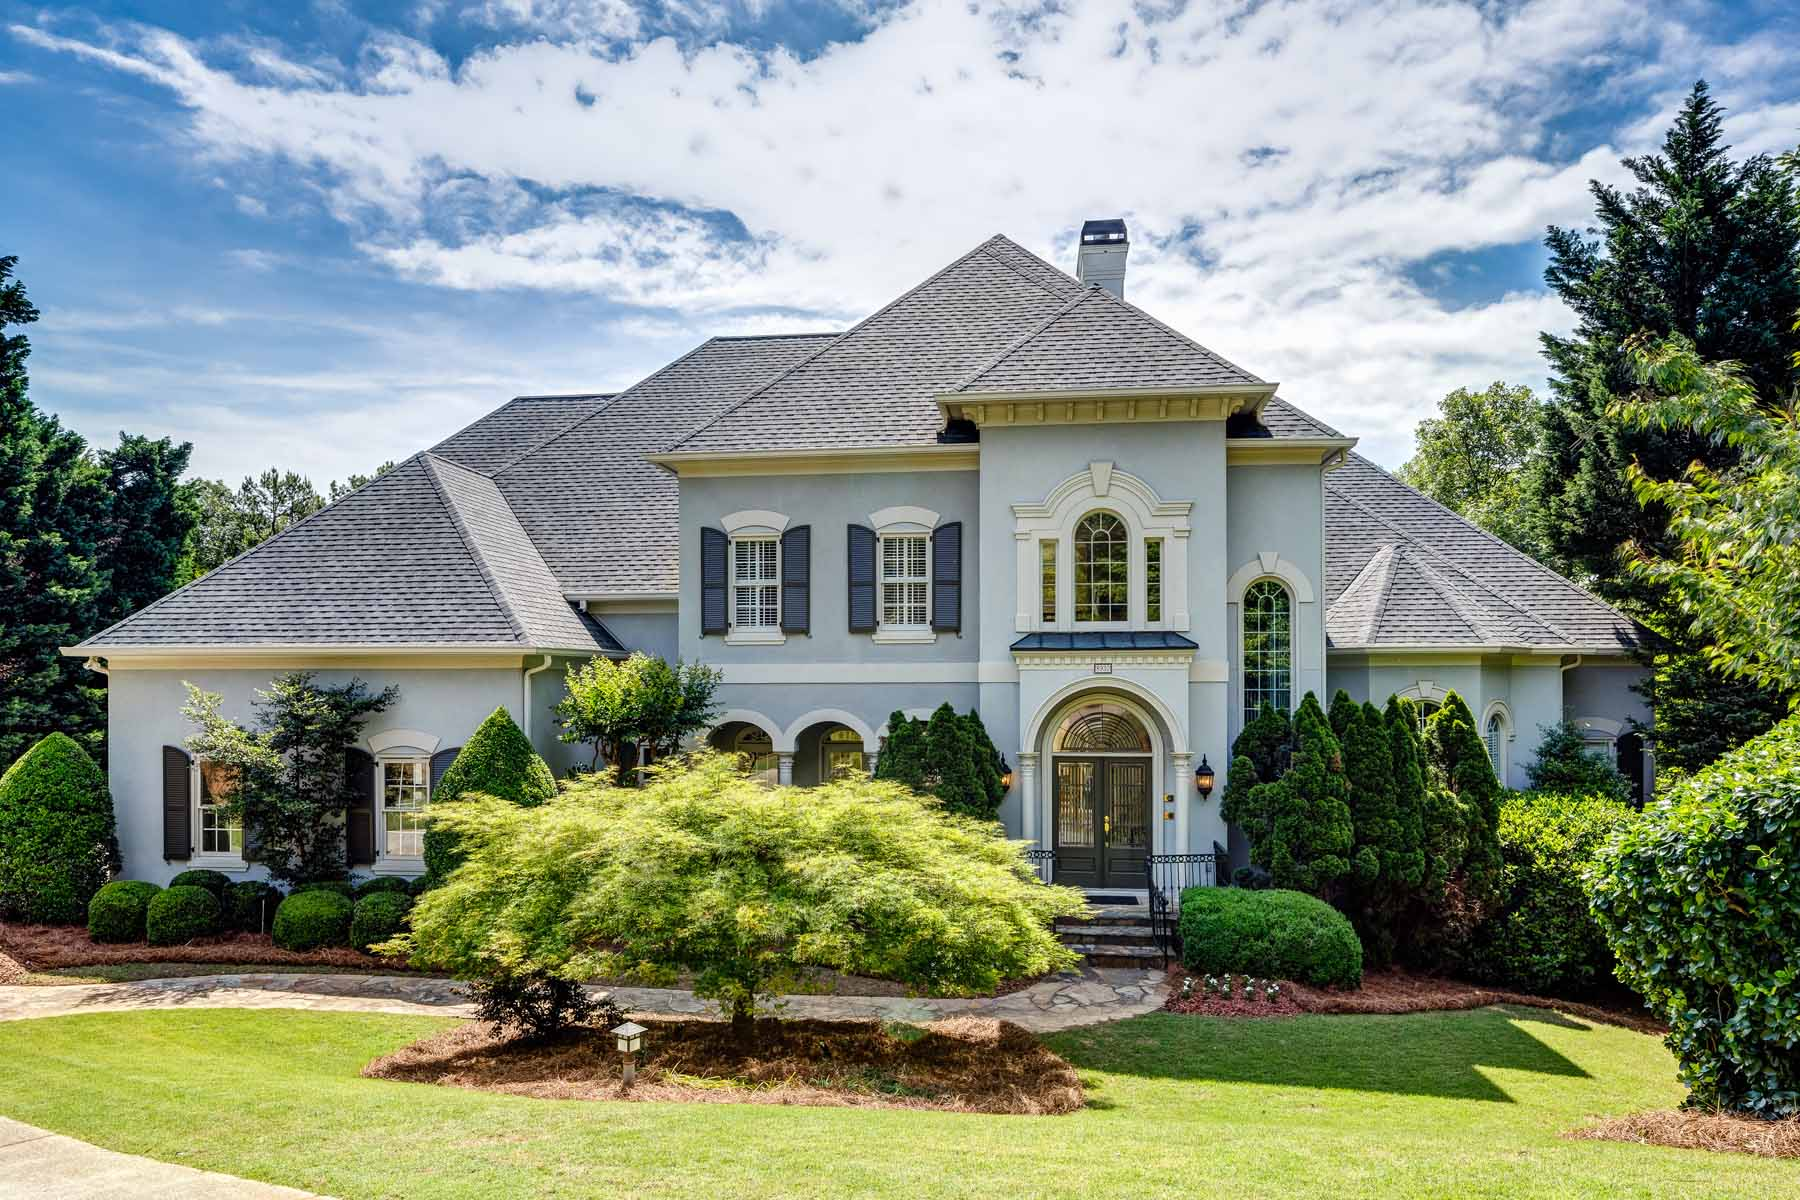 Single Family Home for Sale at Sophisticated Elegance 8930 Old Southwick Pass Alpharetta, Georgia, 30022 United States